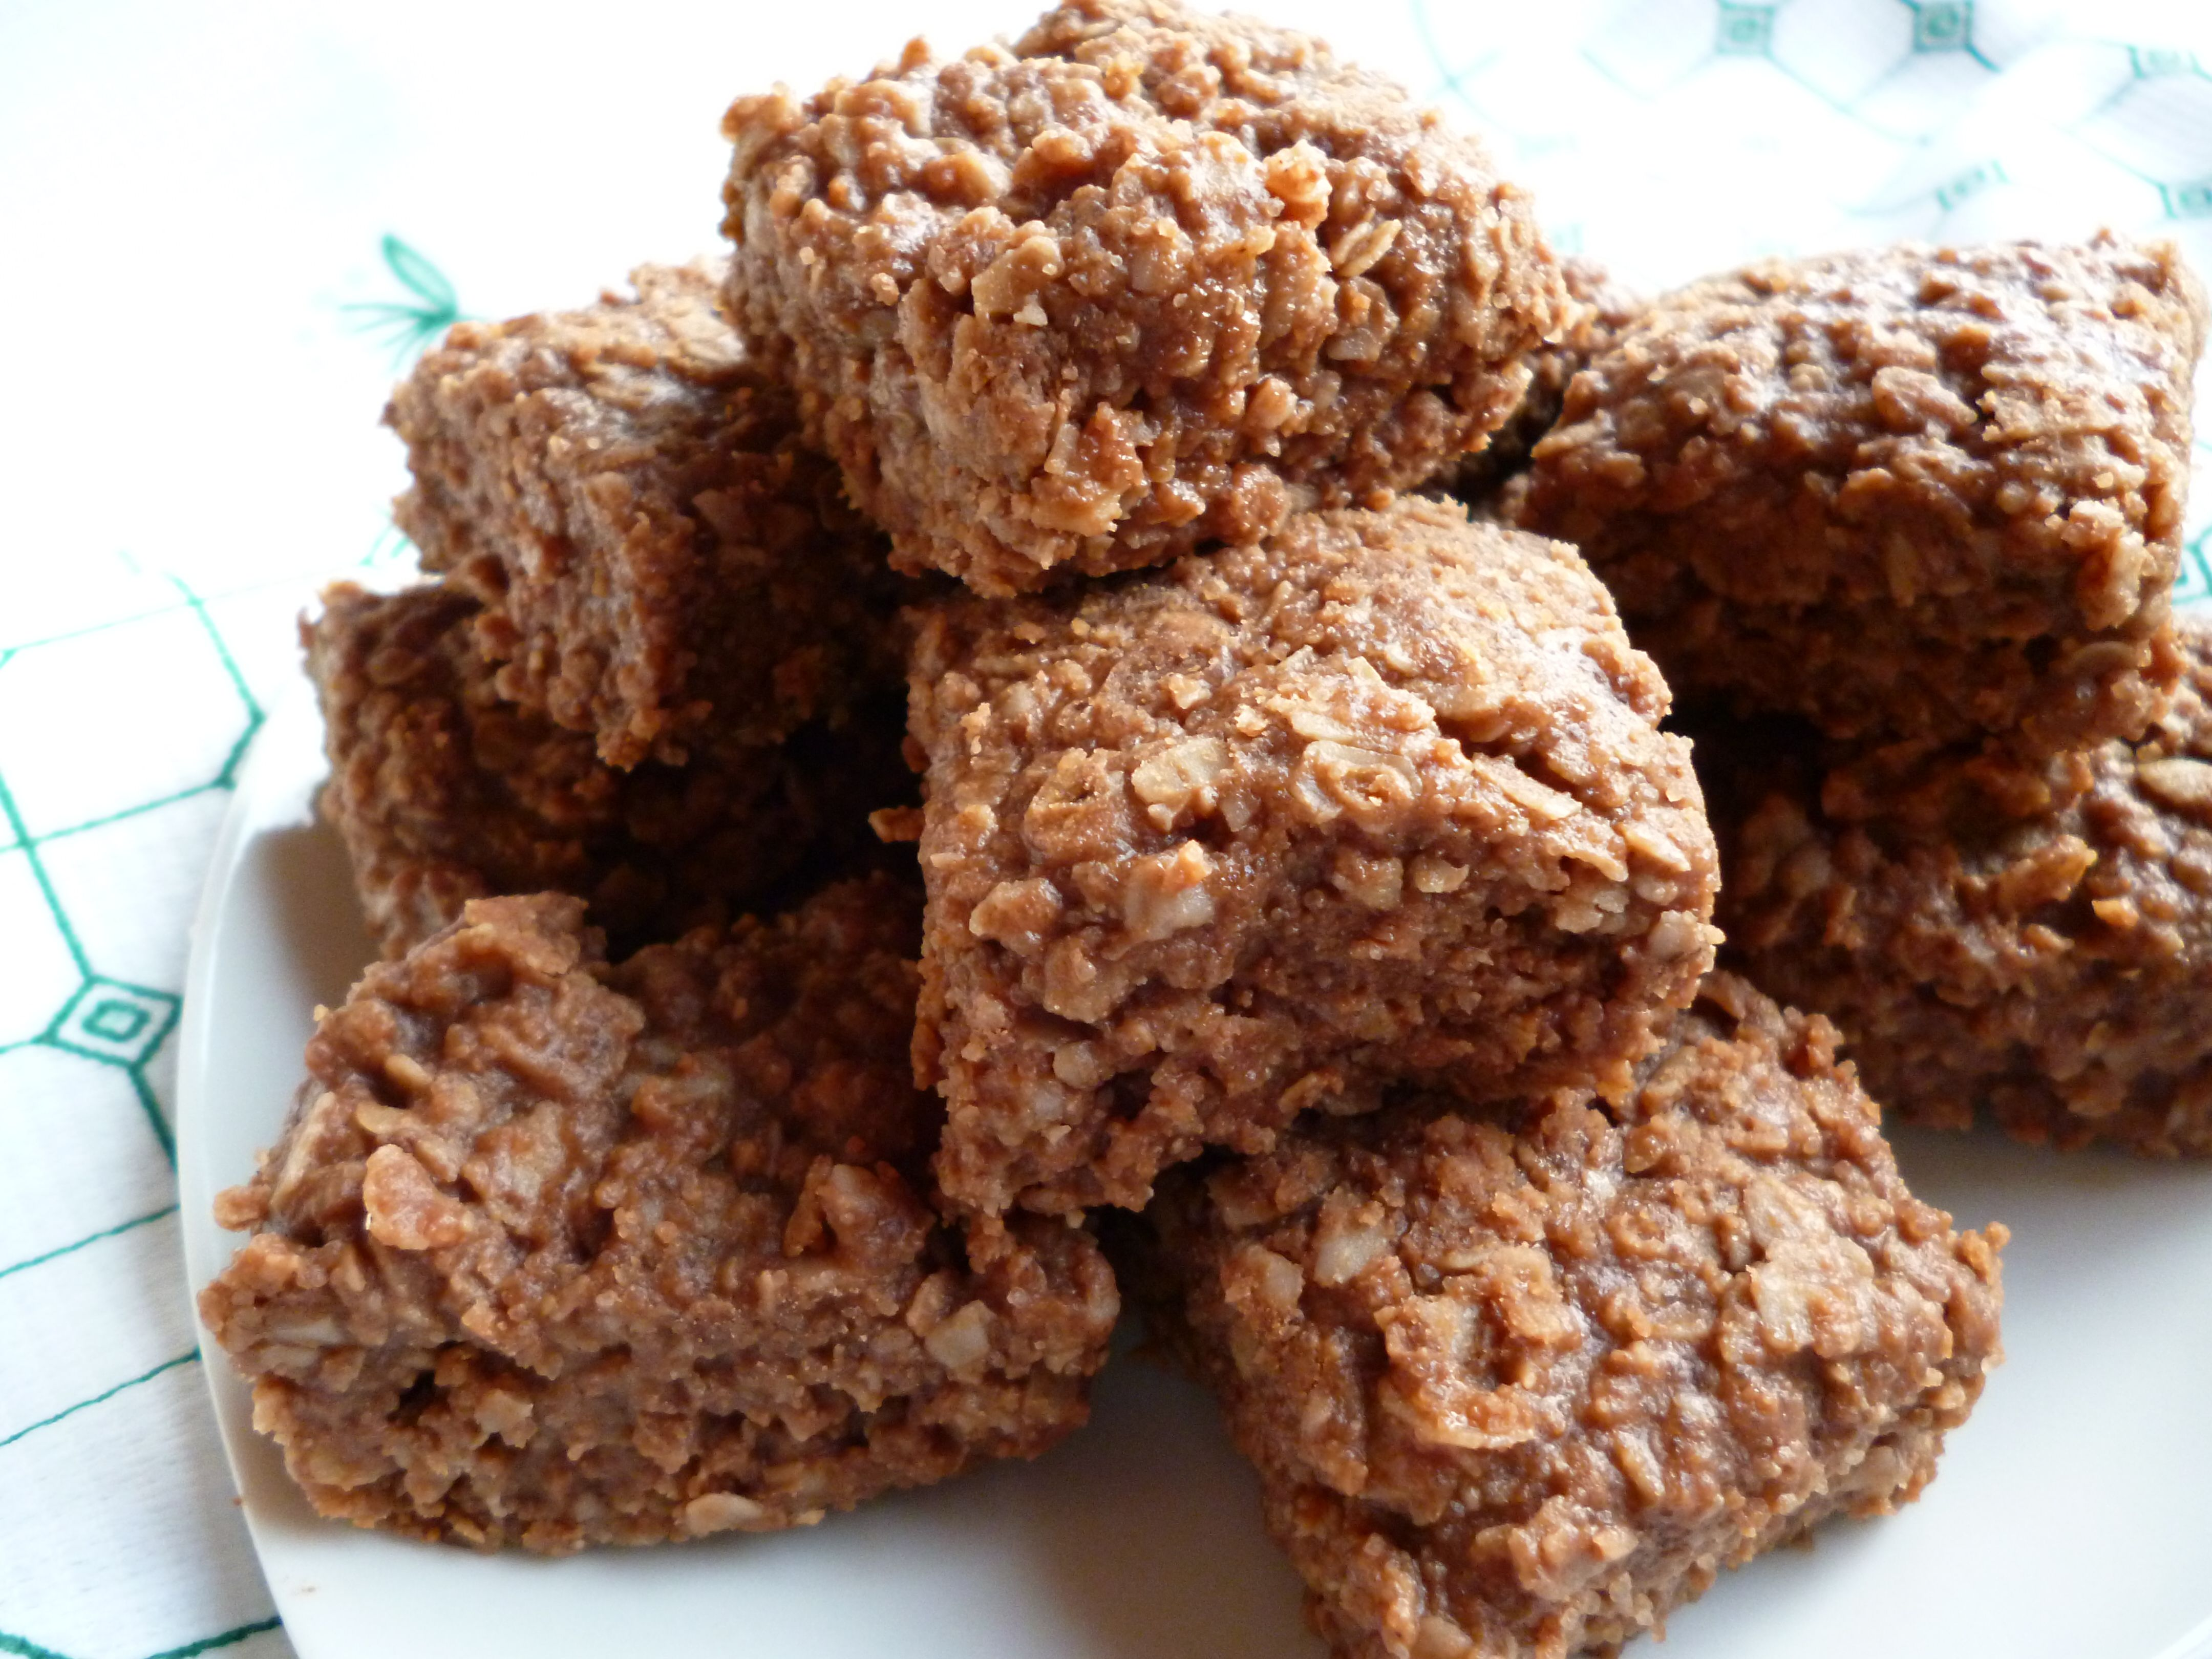 nutella no-bakes   bring 2 c sugar & 1 c butter to a boil on med/high heat. reduce heat and add 1 tsp vanilla, 1/4 tsp salt, 1 c peanut butter, 1 c nutella or generic equiv.  mix/cook 5 min.  add 3 cup oats.  spread in 8in. pan lined with foil. cut when cool.   try not to eat them all yourself